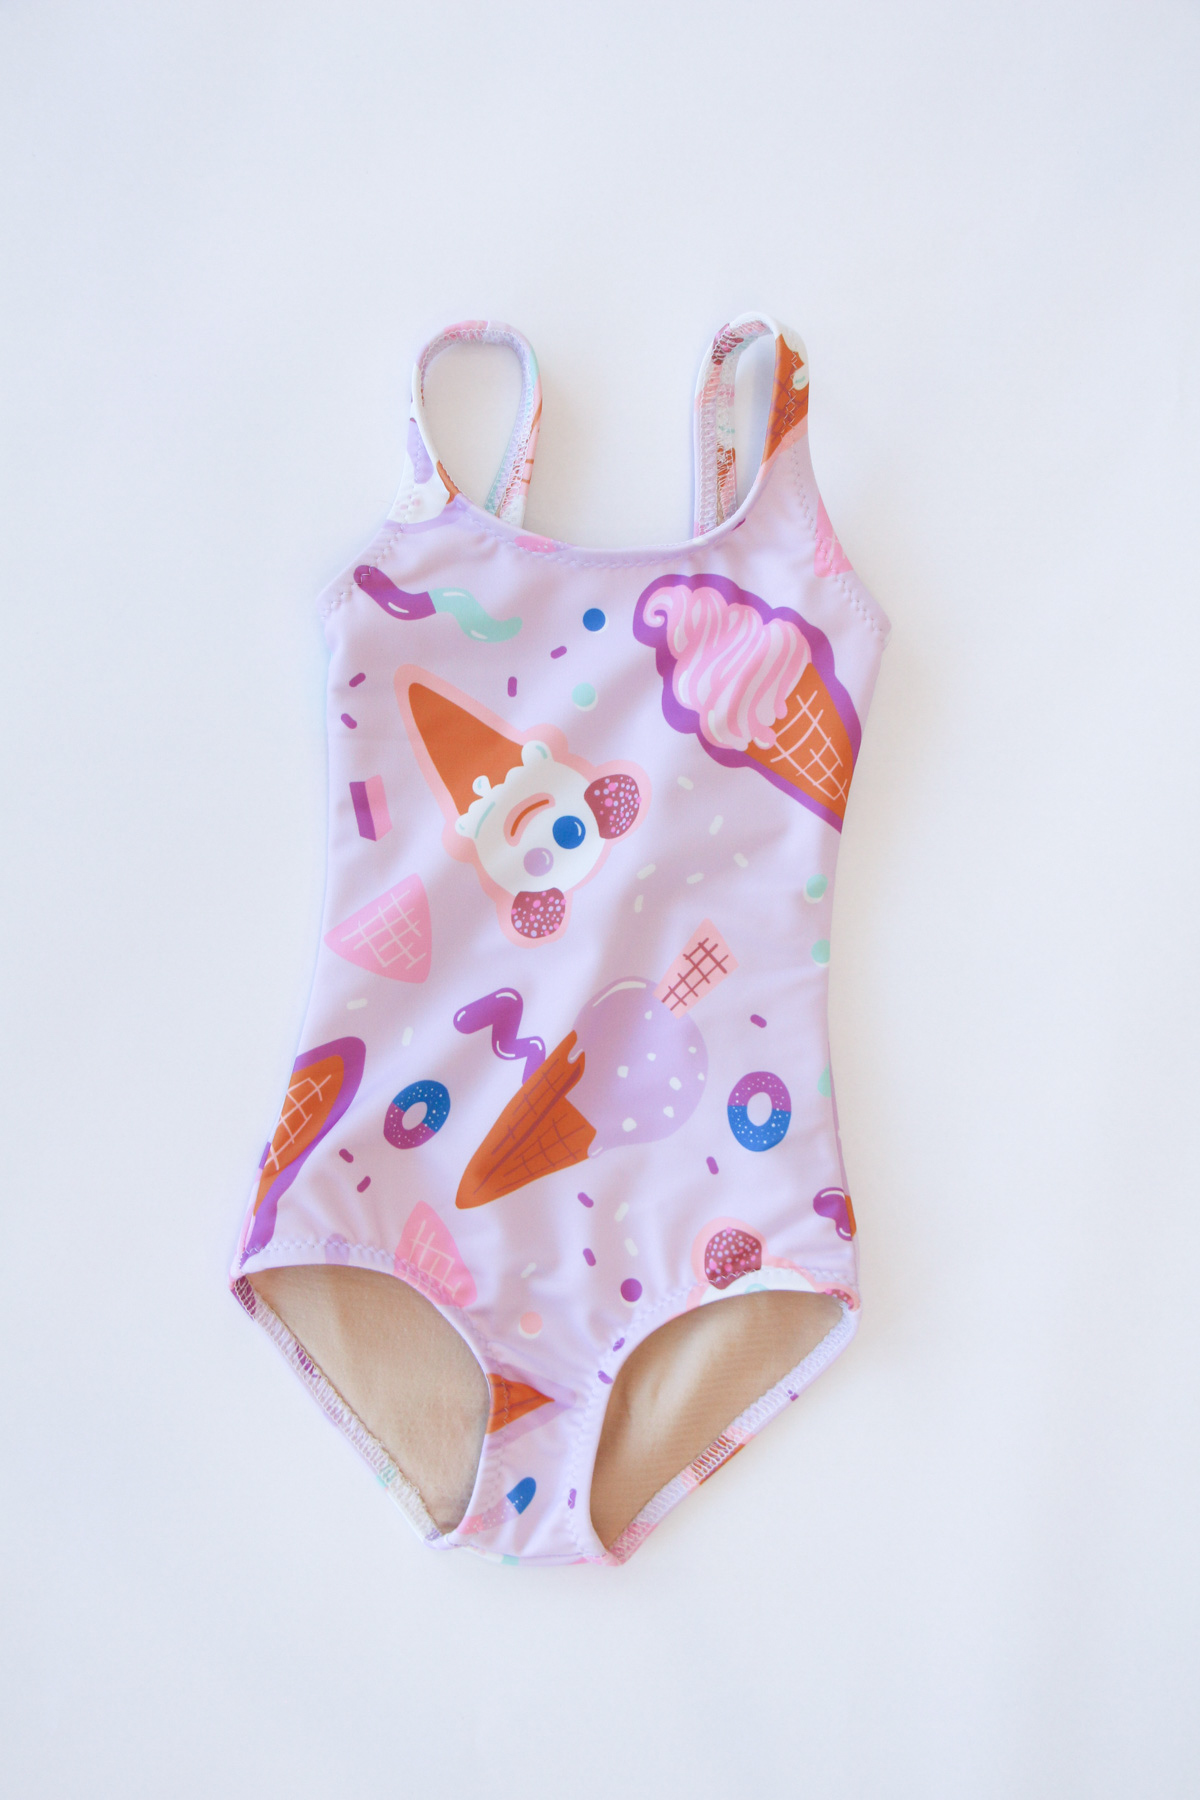 Megan Nielsen Mini Cottesloe swimsuit! Four super adorable and practical kids swimsuit variations in one great pattern!